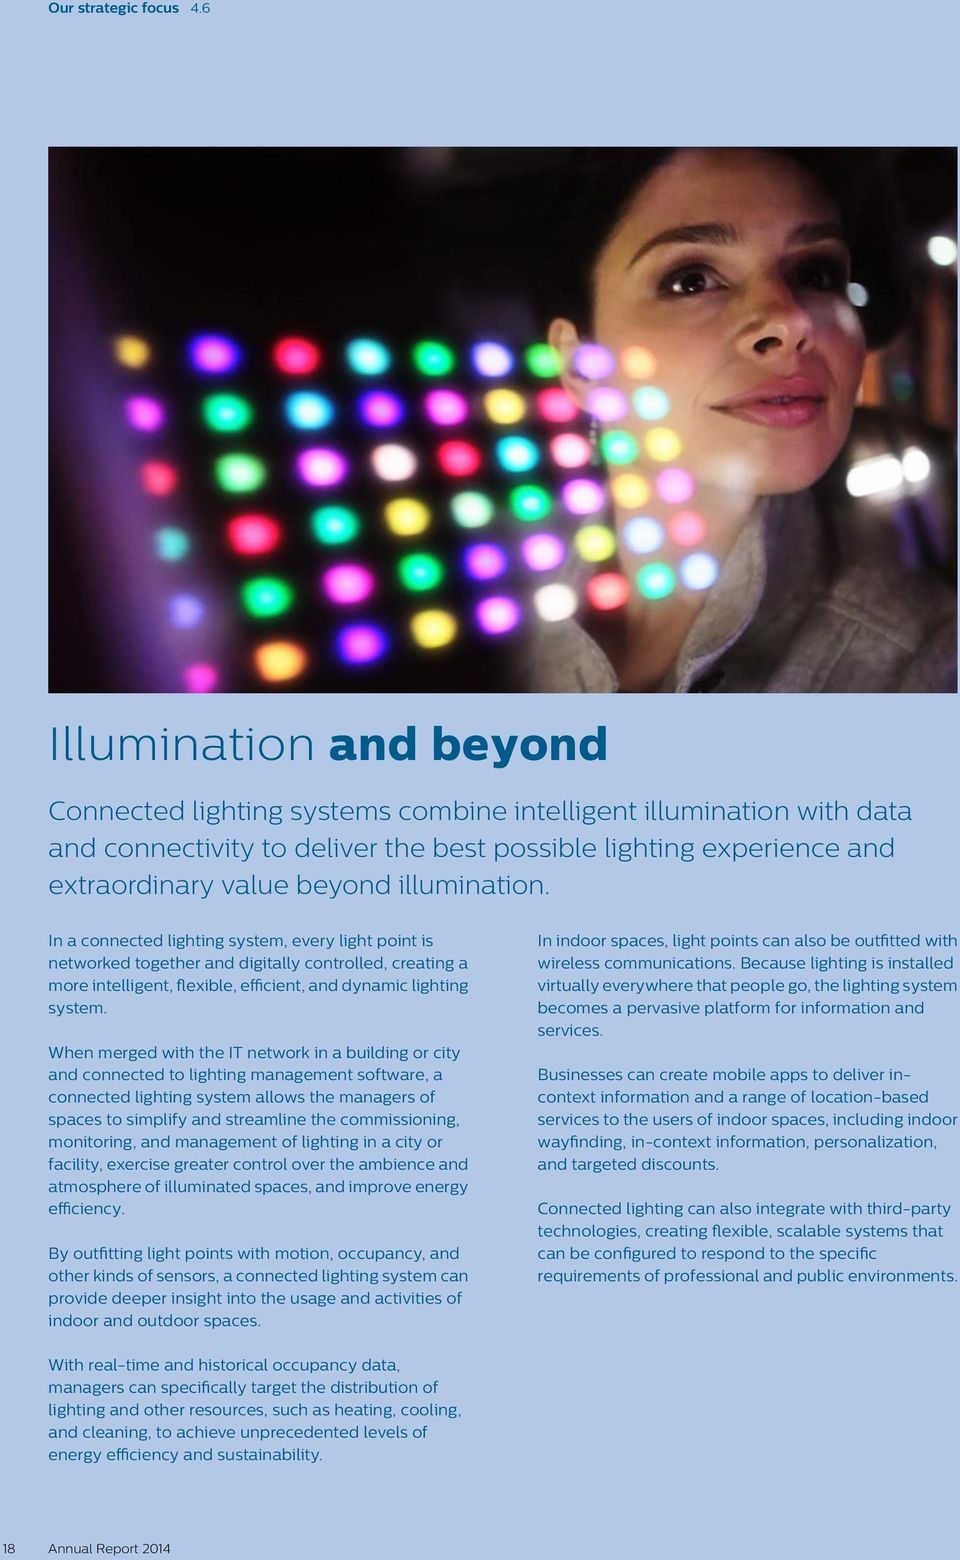 illumination. In a connected lighting system, every light point is networked together and digitally controlled, creating a more intelligent, flexible, efficient, and dynamic lighting system.